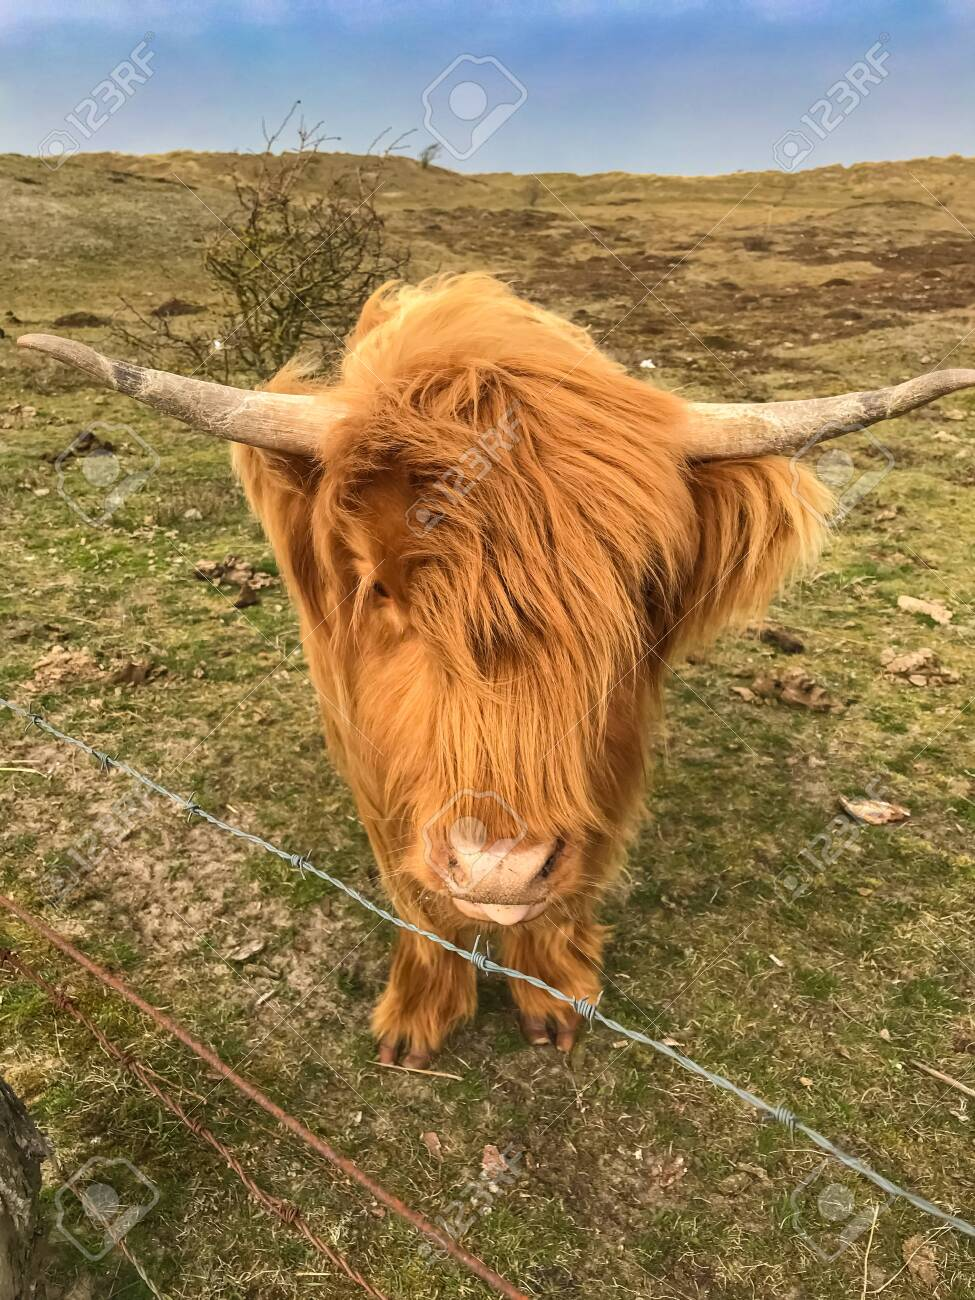 Scottish Highland Cattle At The Fence Of A Pasture